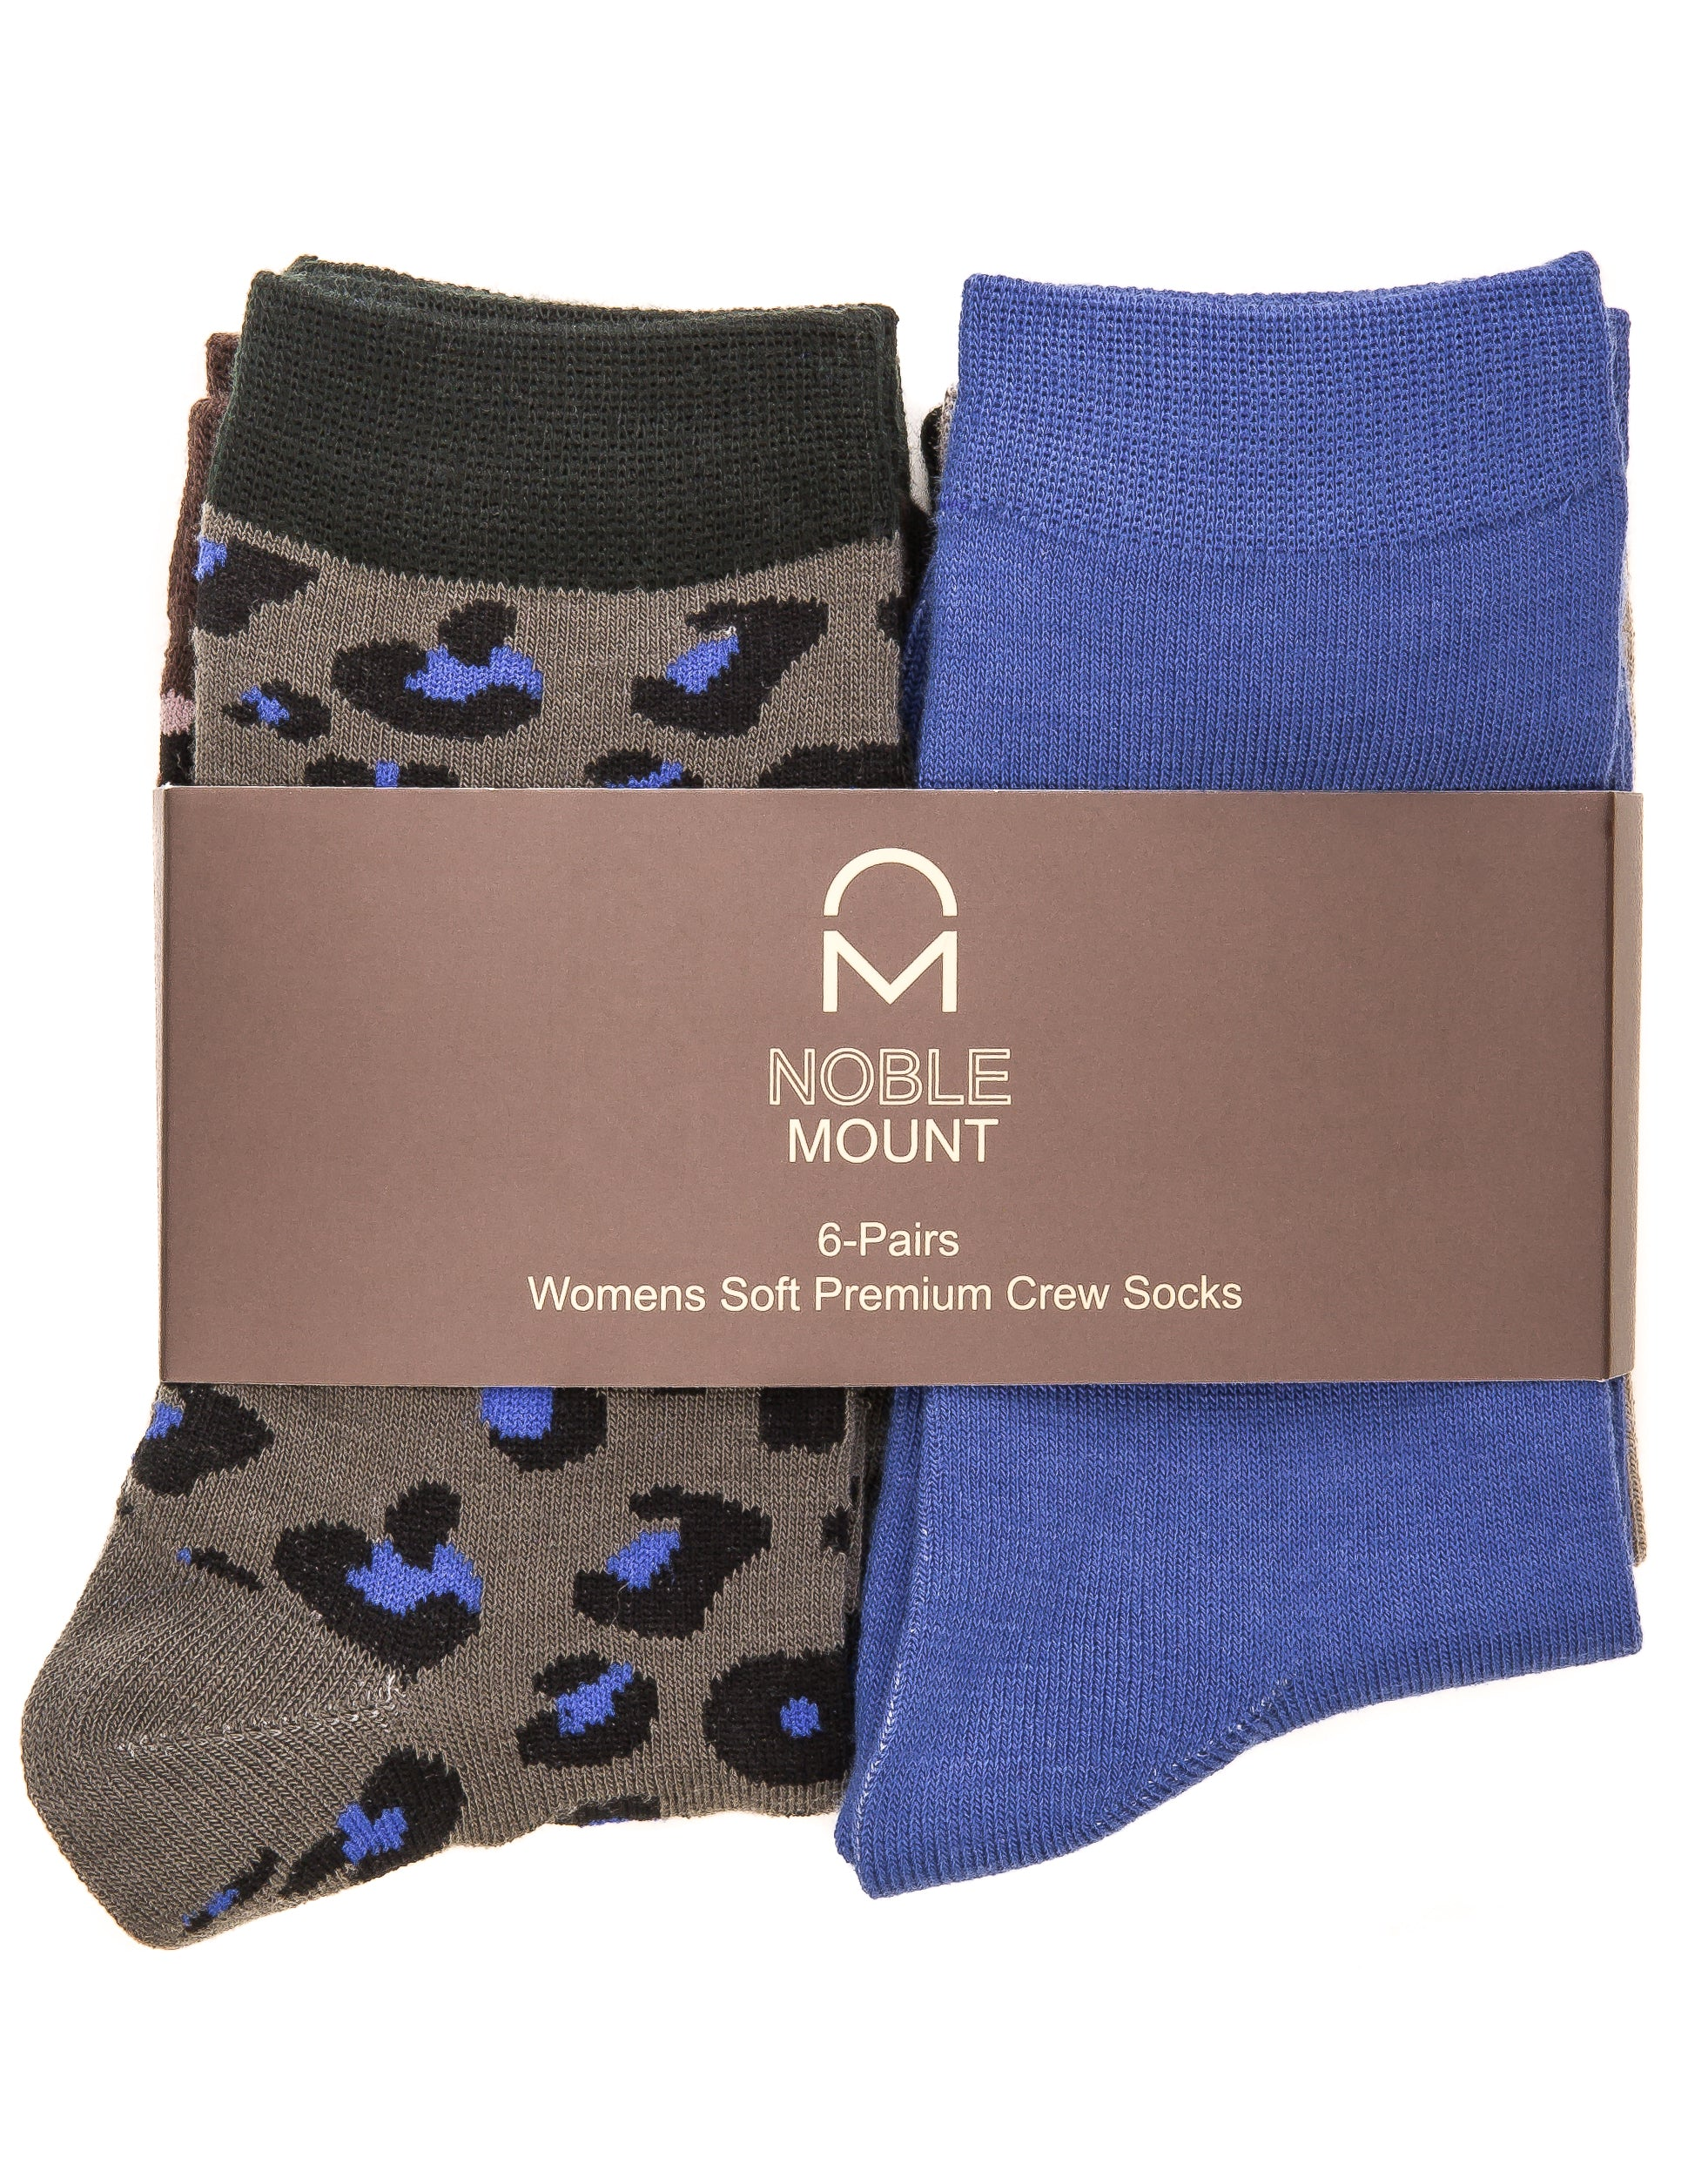 Women's Soft Premium Crew Socks - 6 Pairs